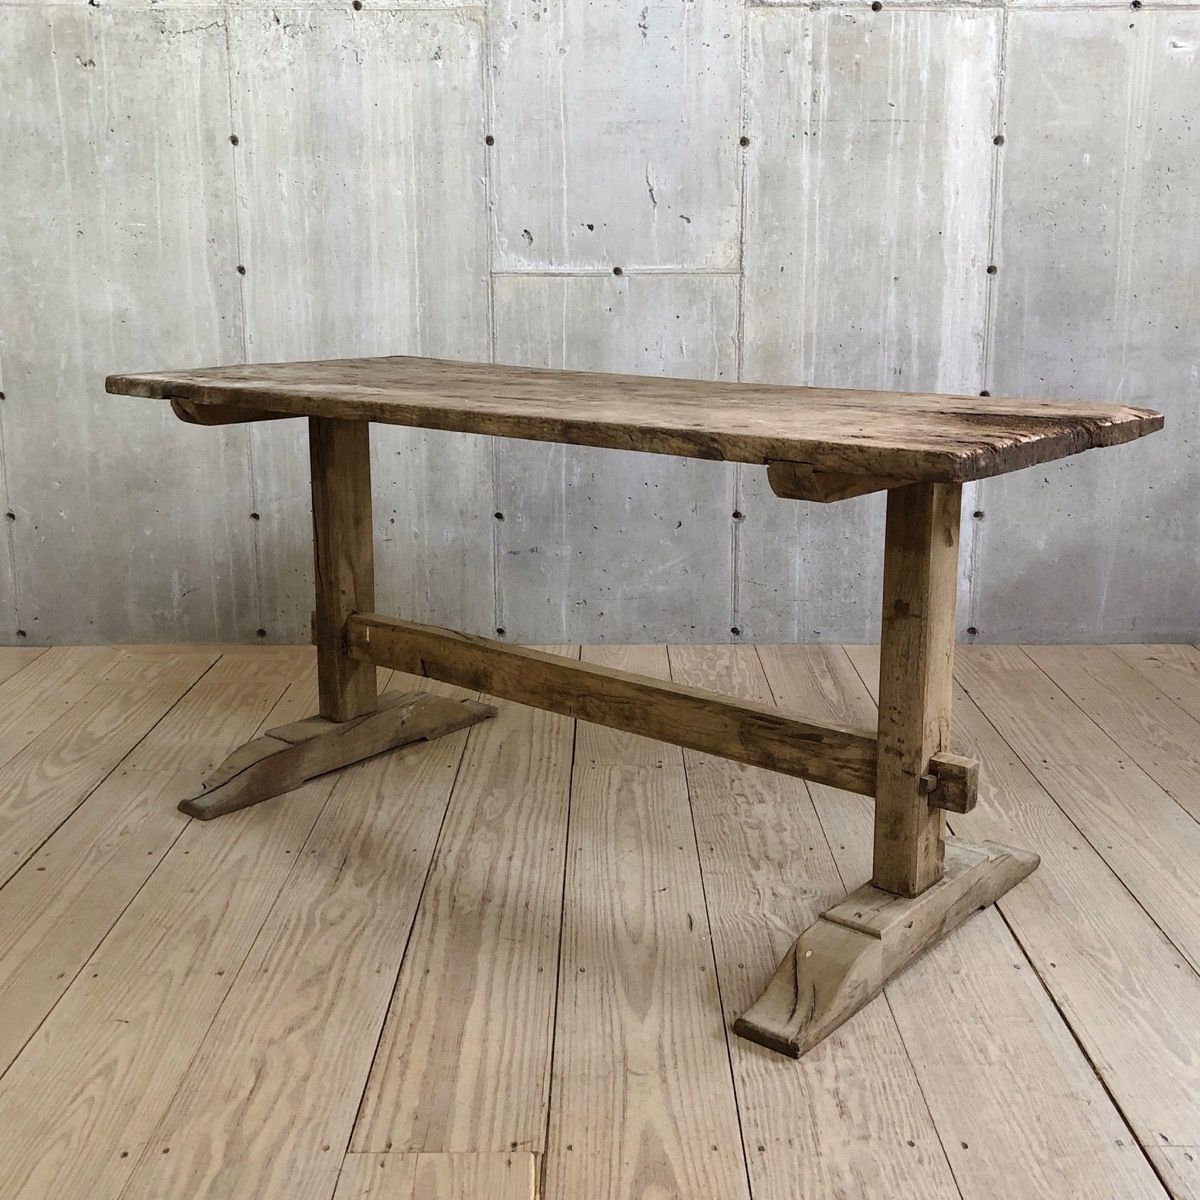 Antique Trestle Table Trestle Table Furniture Design Modern How To Antique Wood